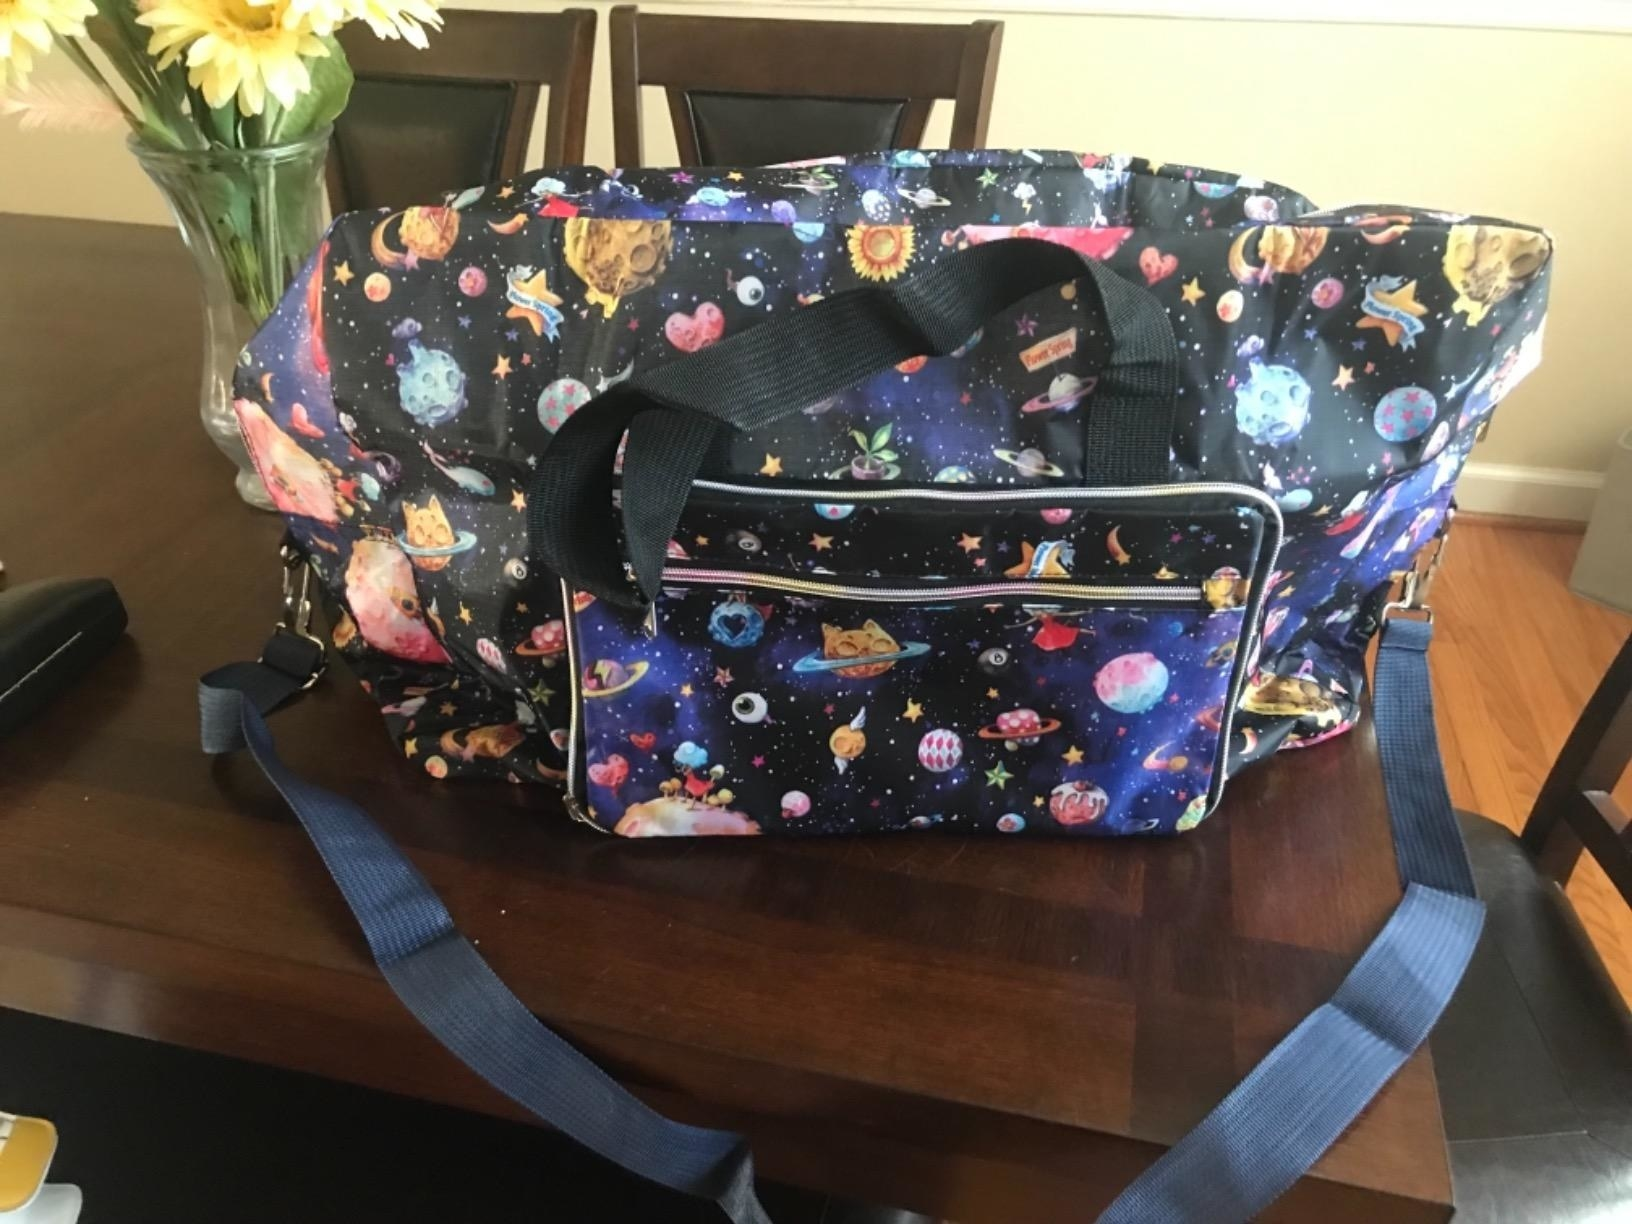 A reviewer photo of the duffel bag with a space and galaxy print all around it